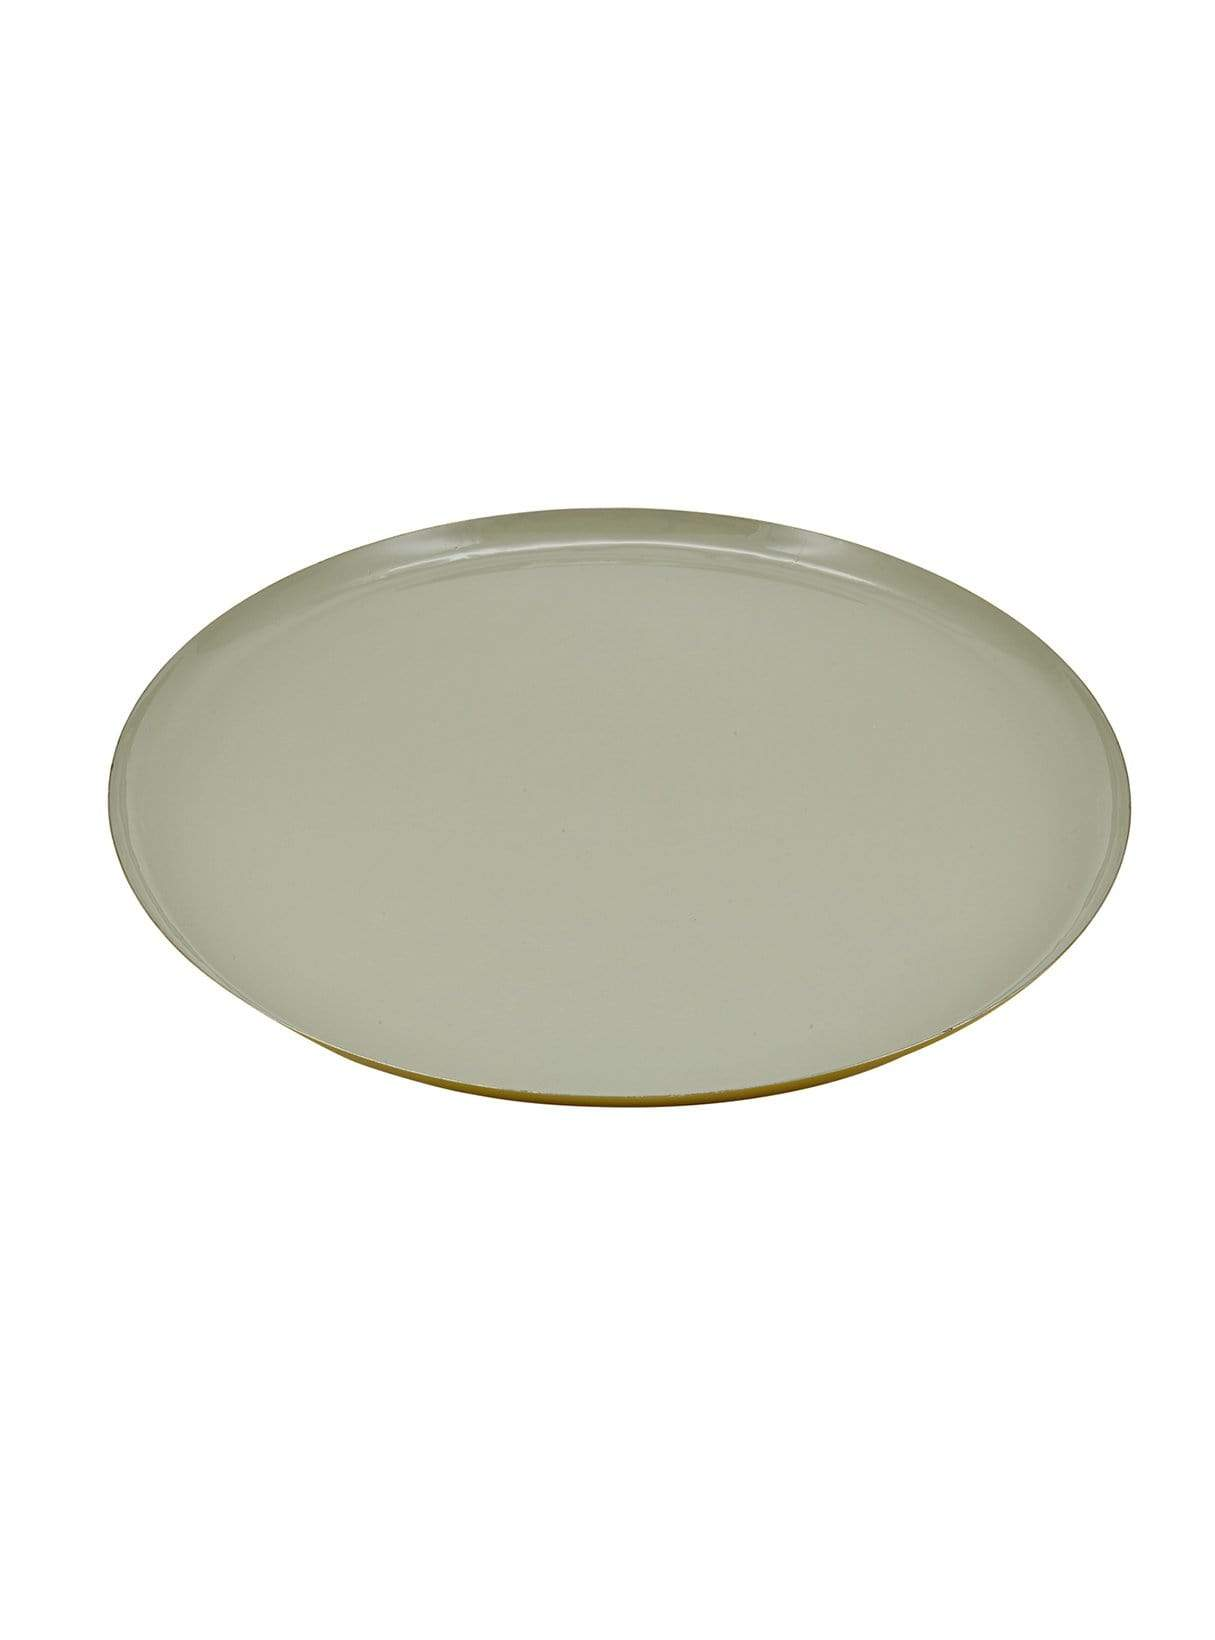 Round tray - grey enamelled - 44cm